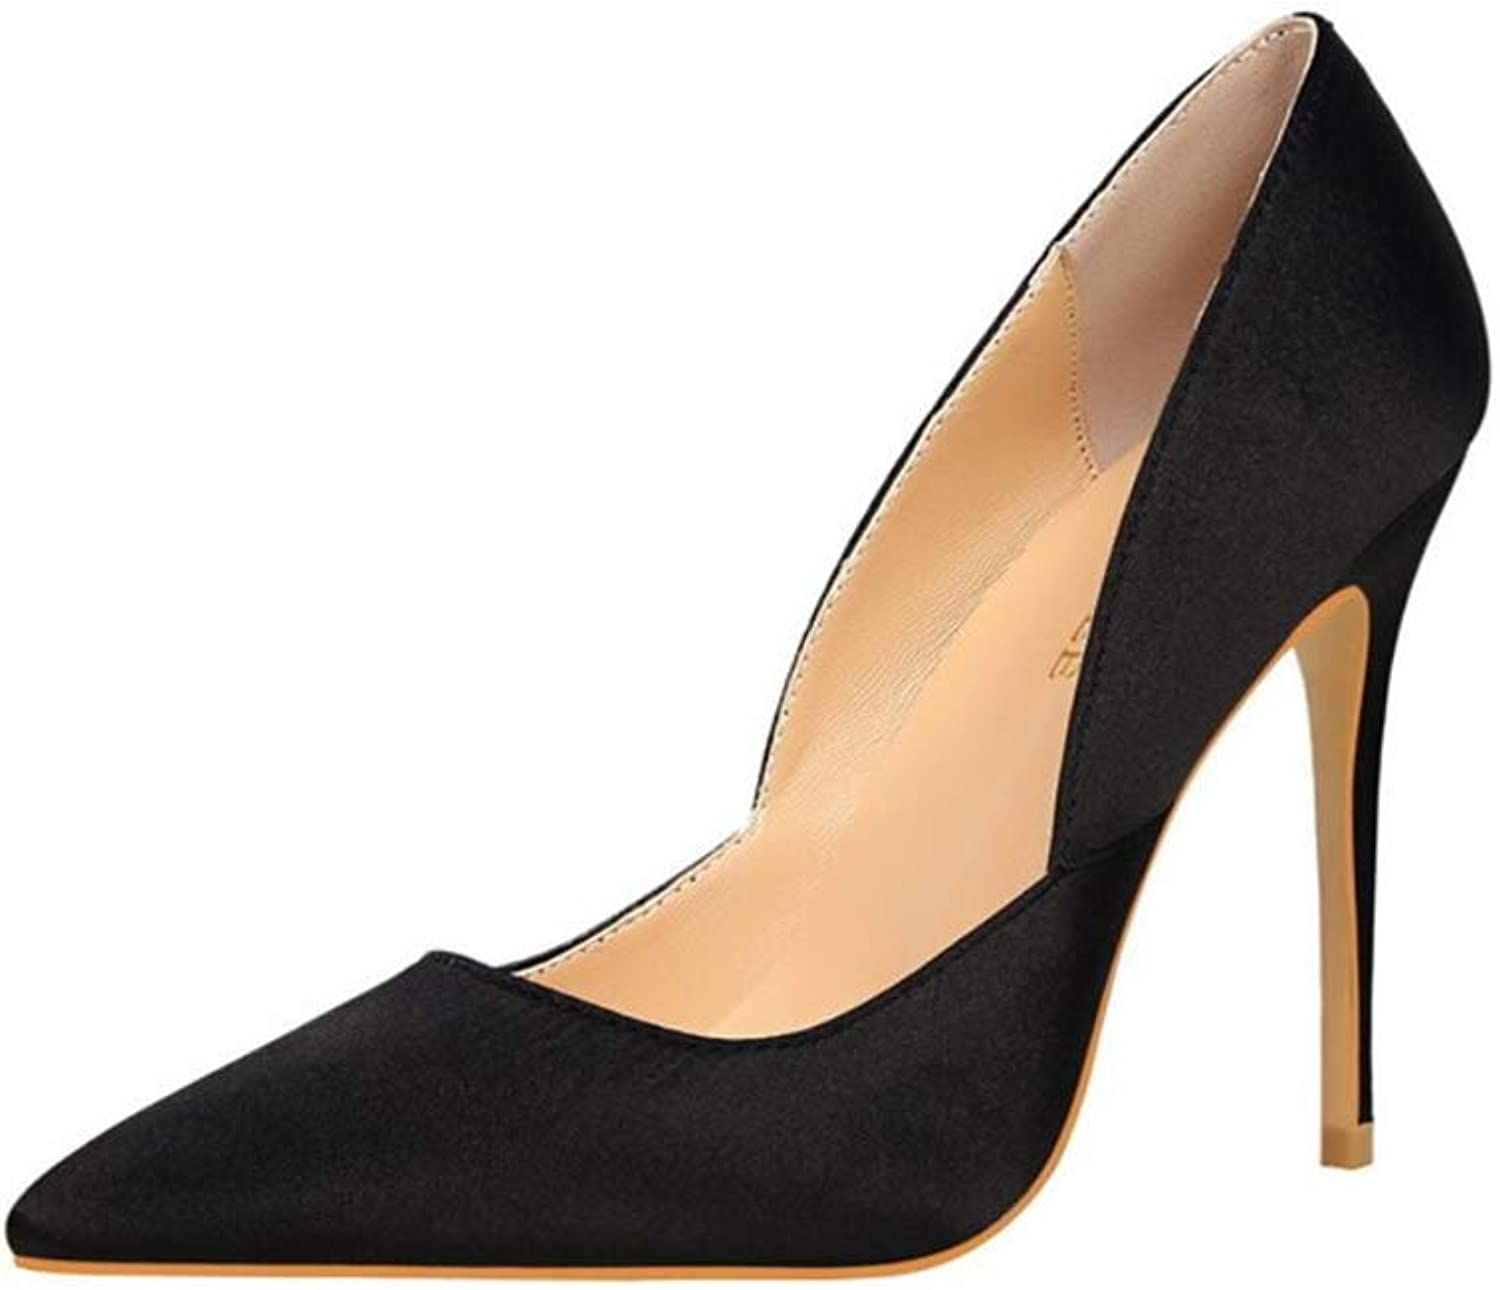 CHENSF Women's high Heels Sexy Pointed Fashion Comfortable high Heel Work shoes